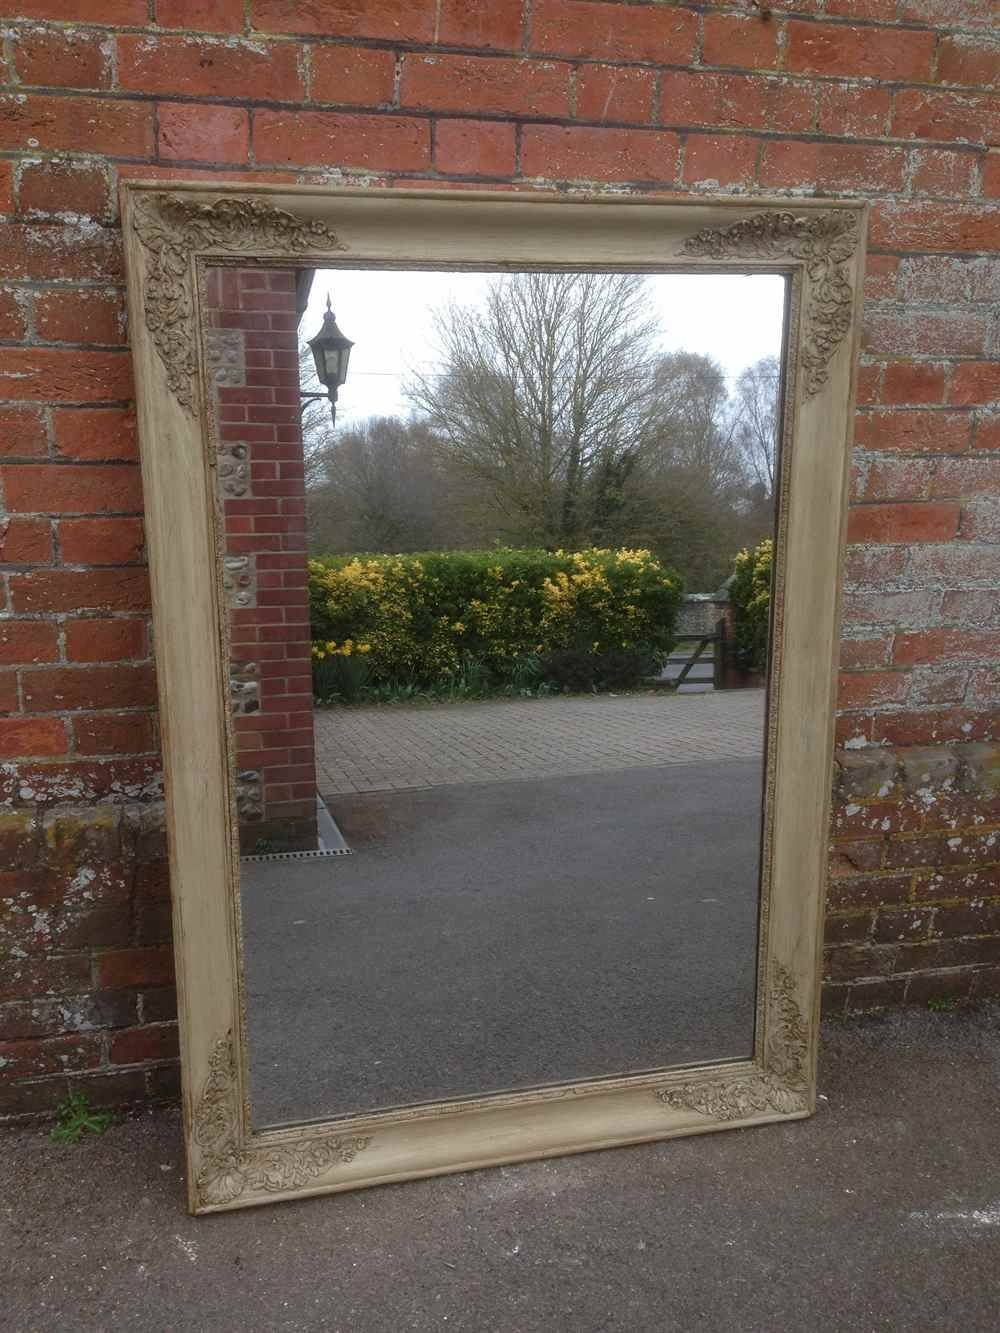 15 best ideas of landscape wall mirrors early antique painted french original louis philippe wall mirror pertaining to landscape wall mirrors image amipublicfo Gallery